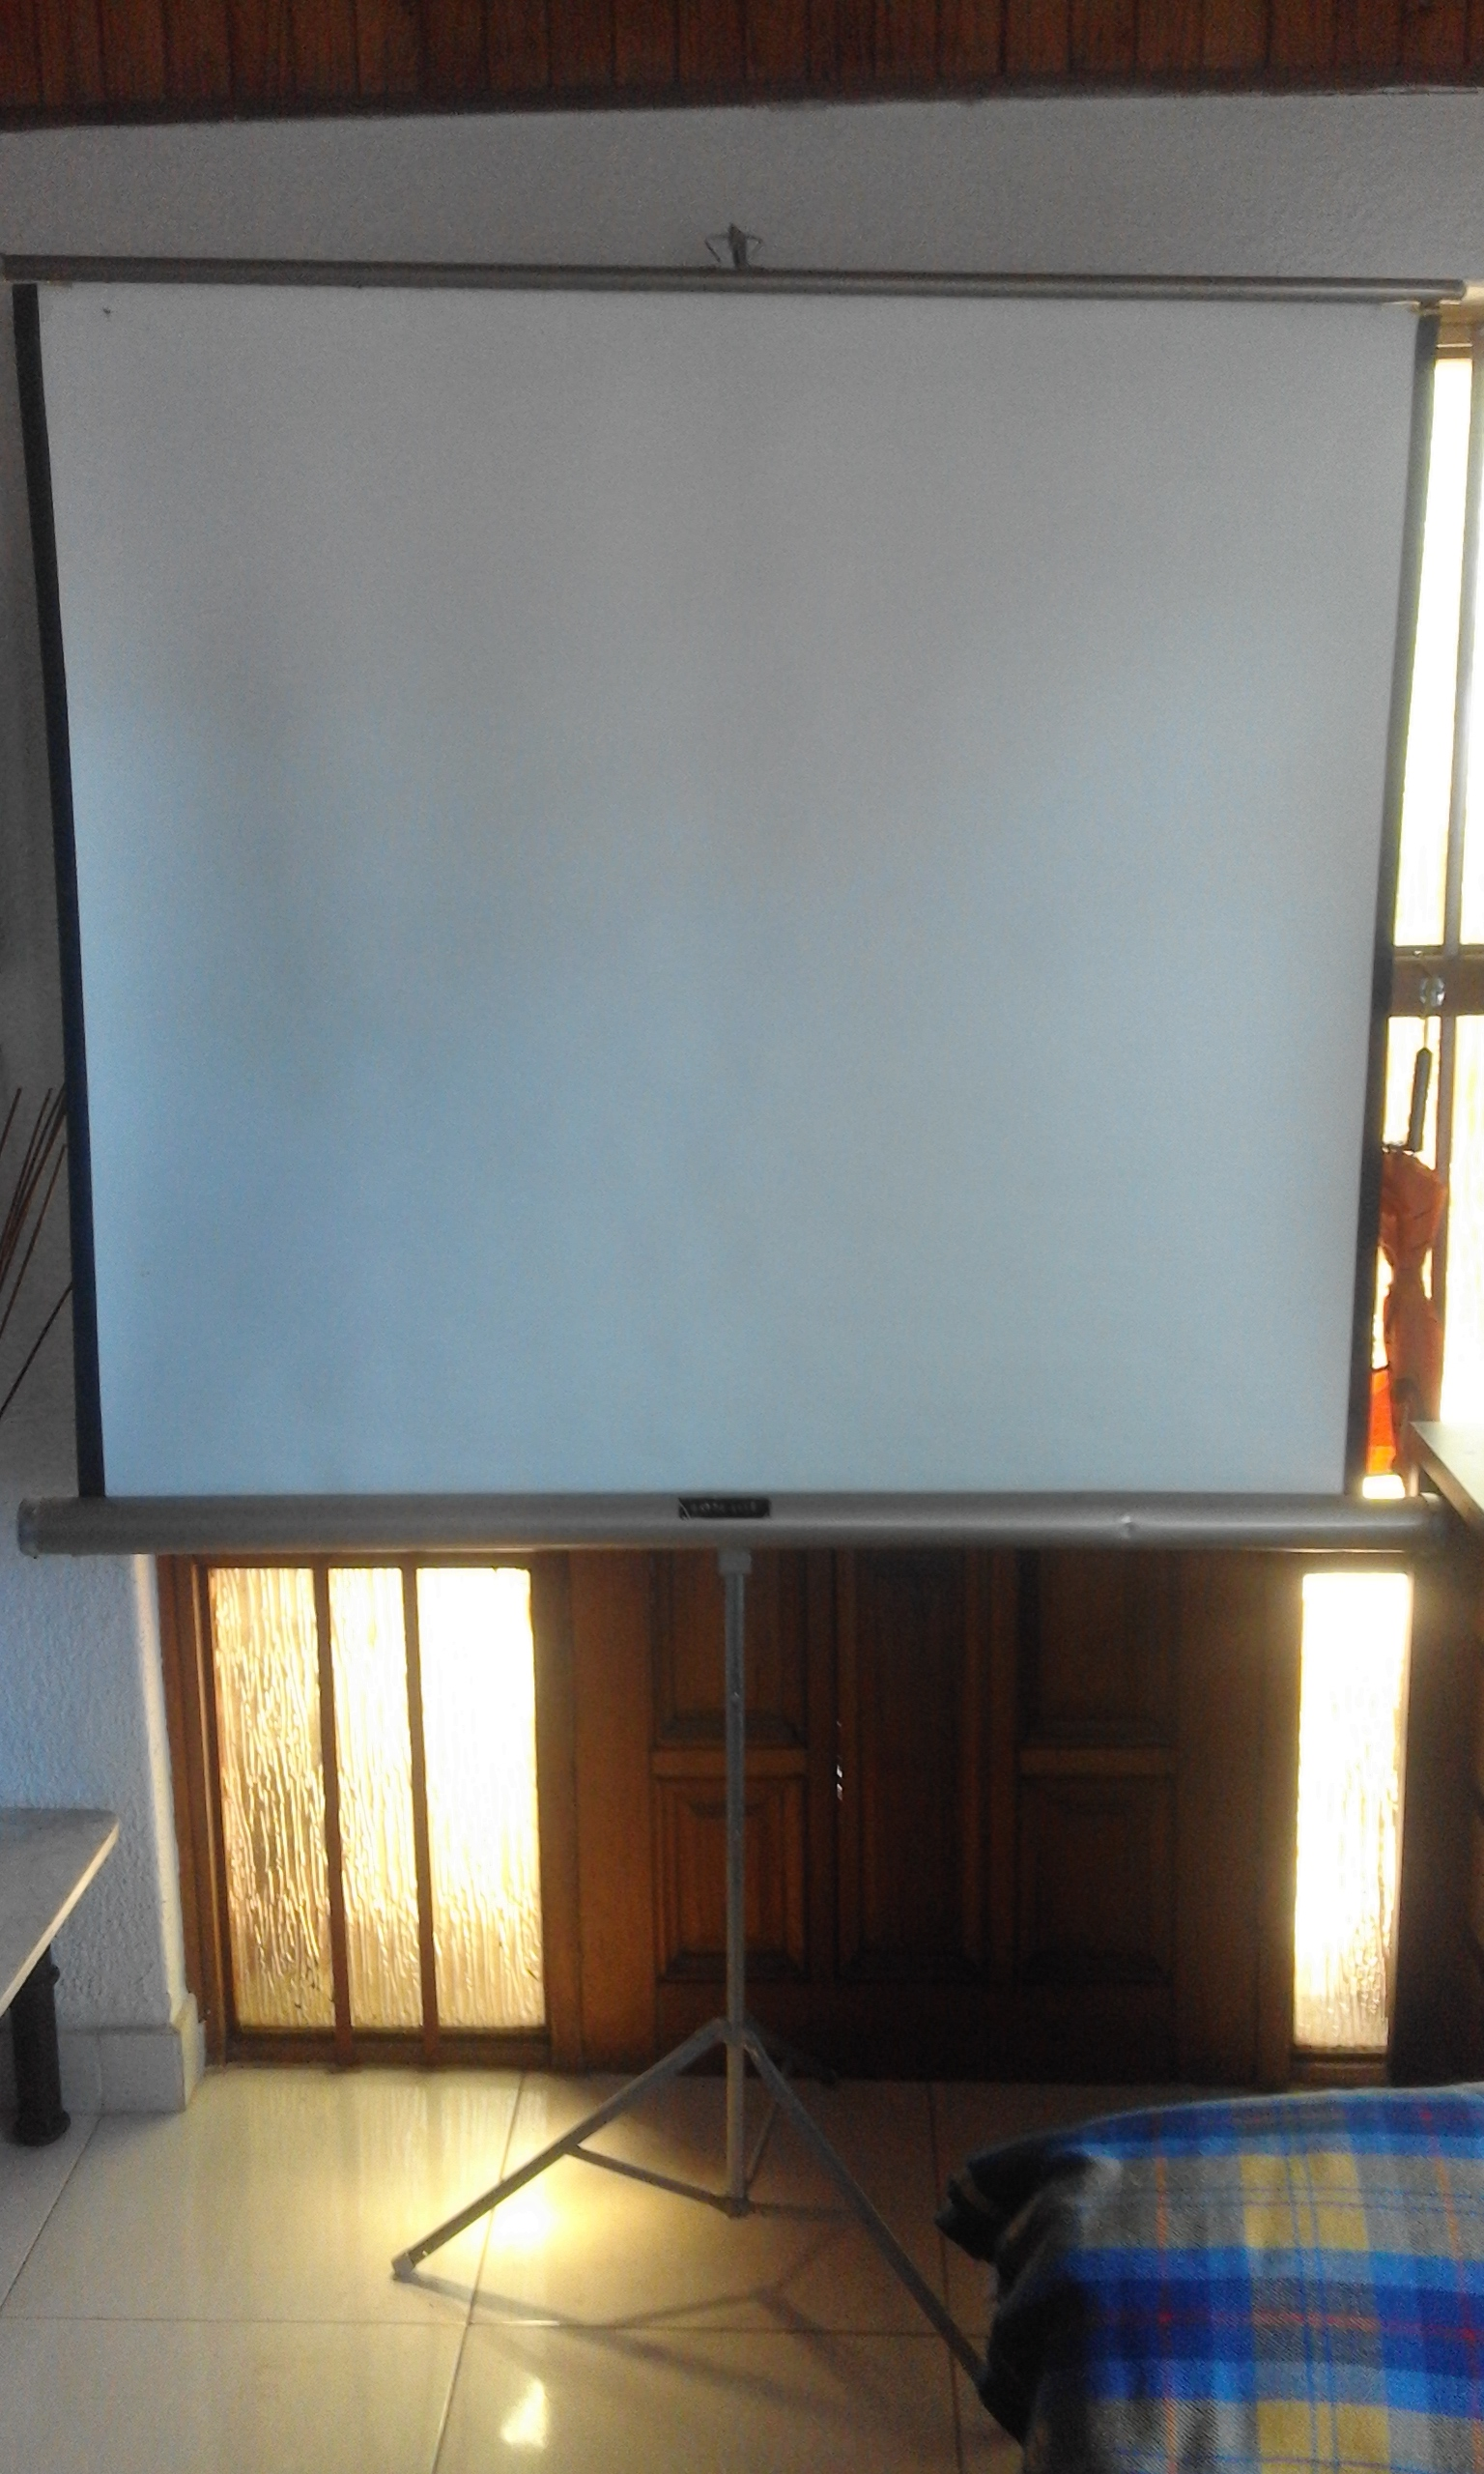 Projector Screen on Tripod Foldable,130cmX130cm In good condition.